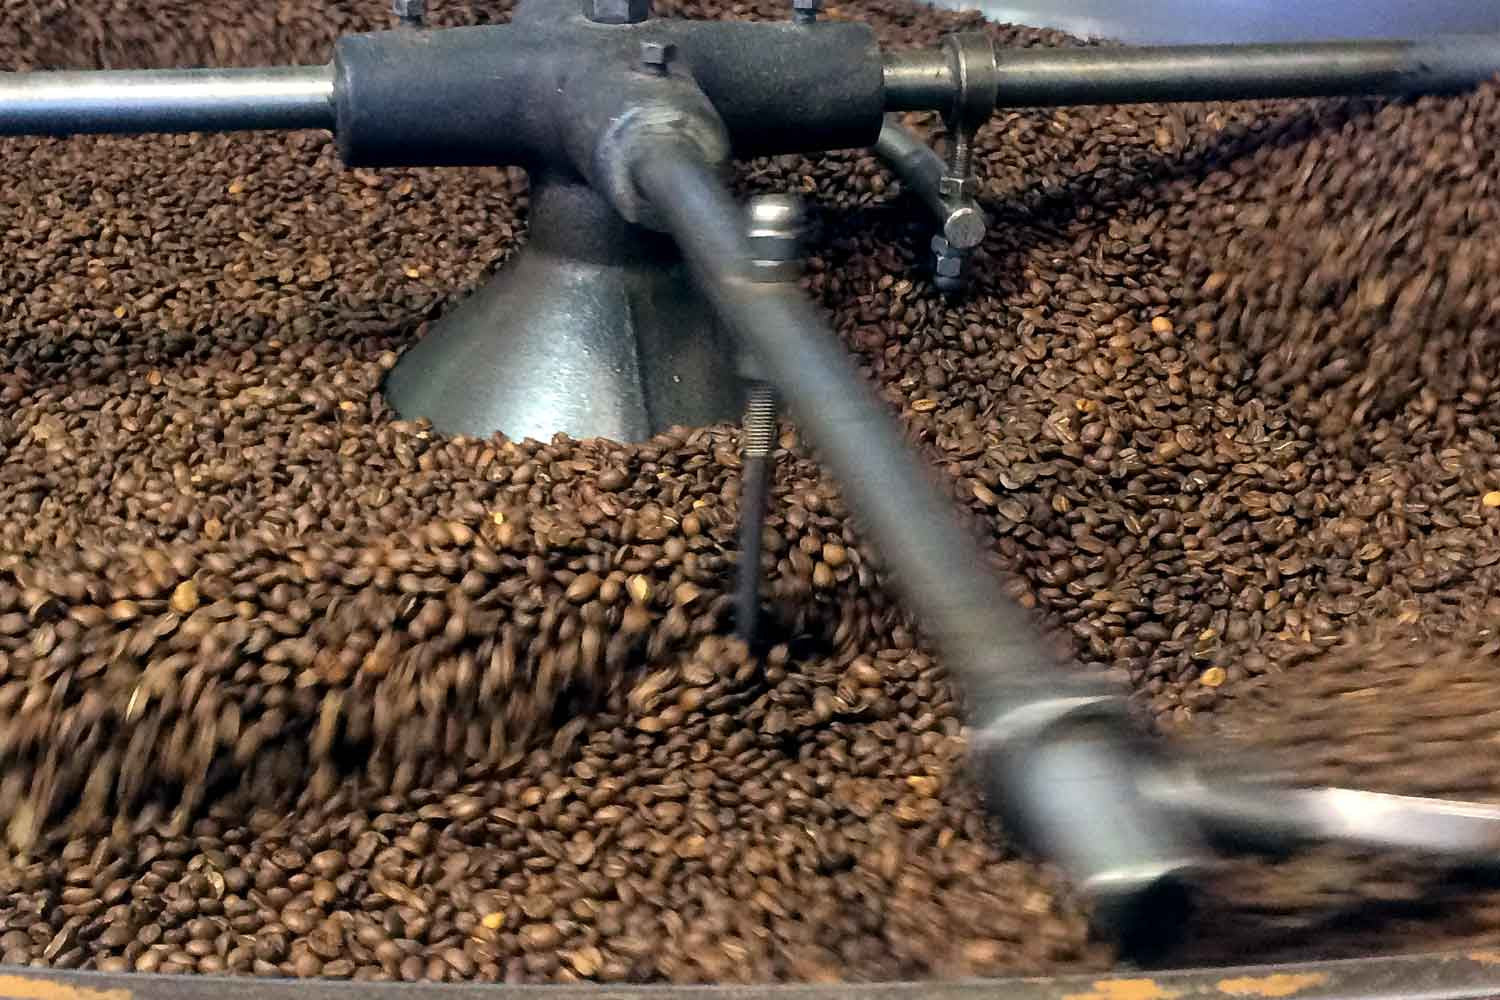 Bulk roasted coffee in commercial cooling tray